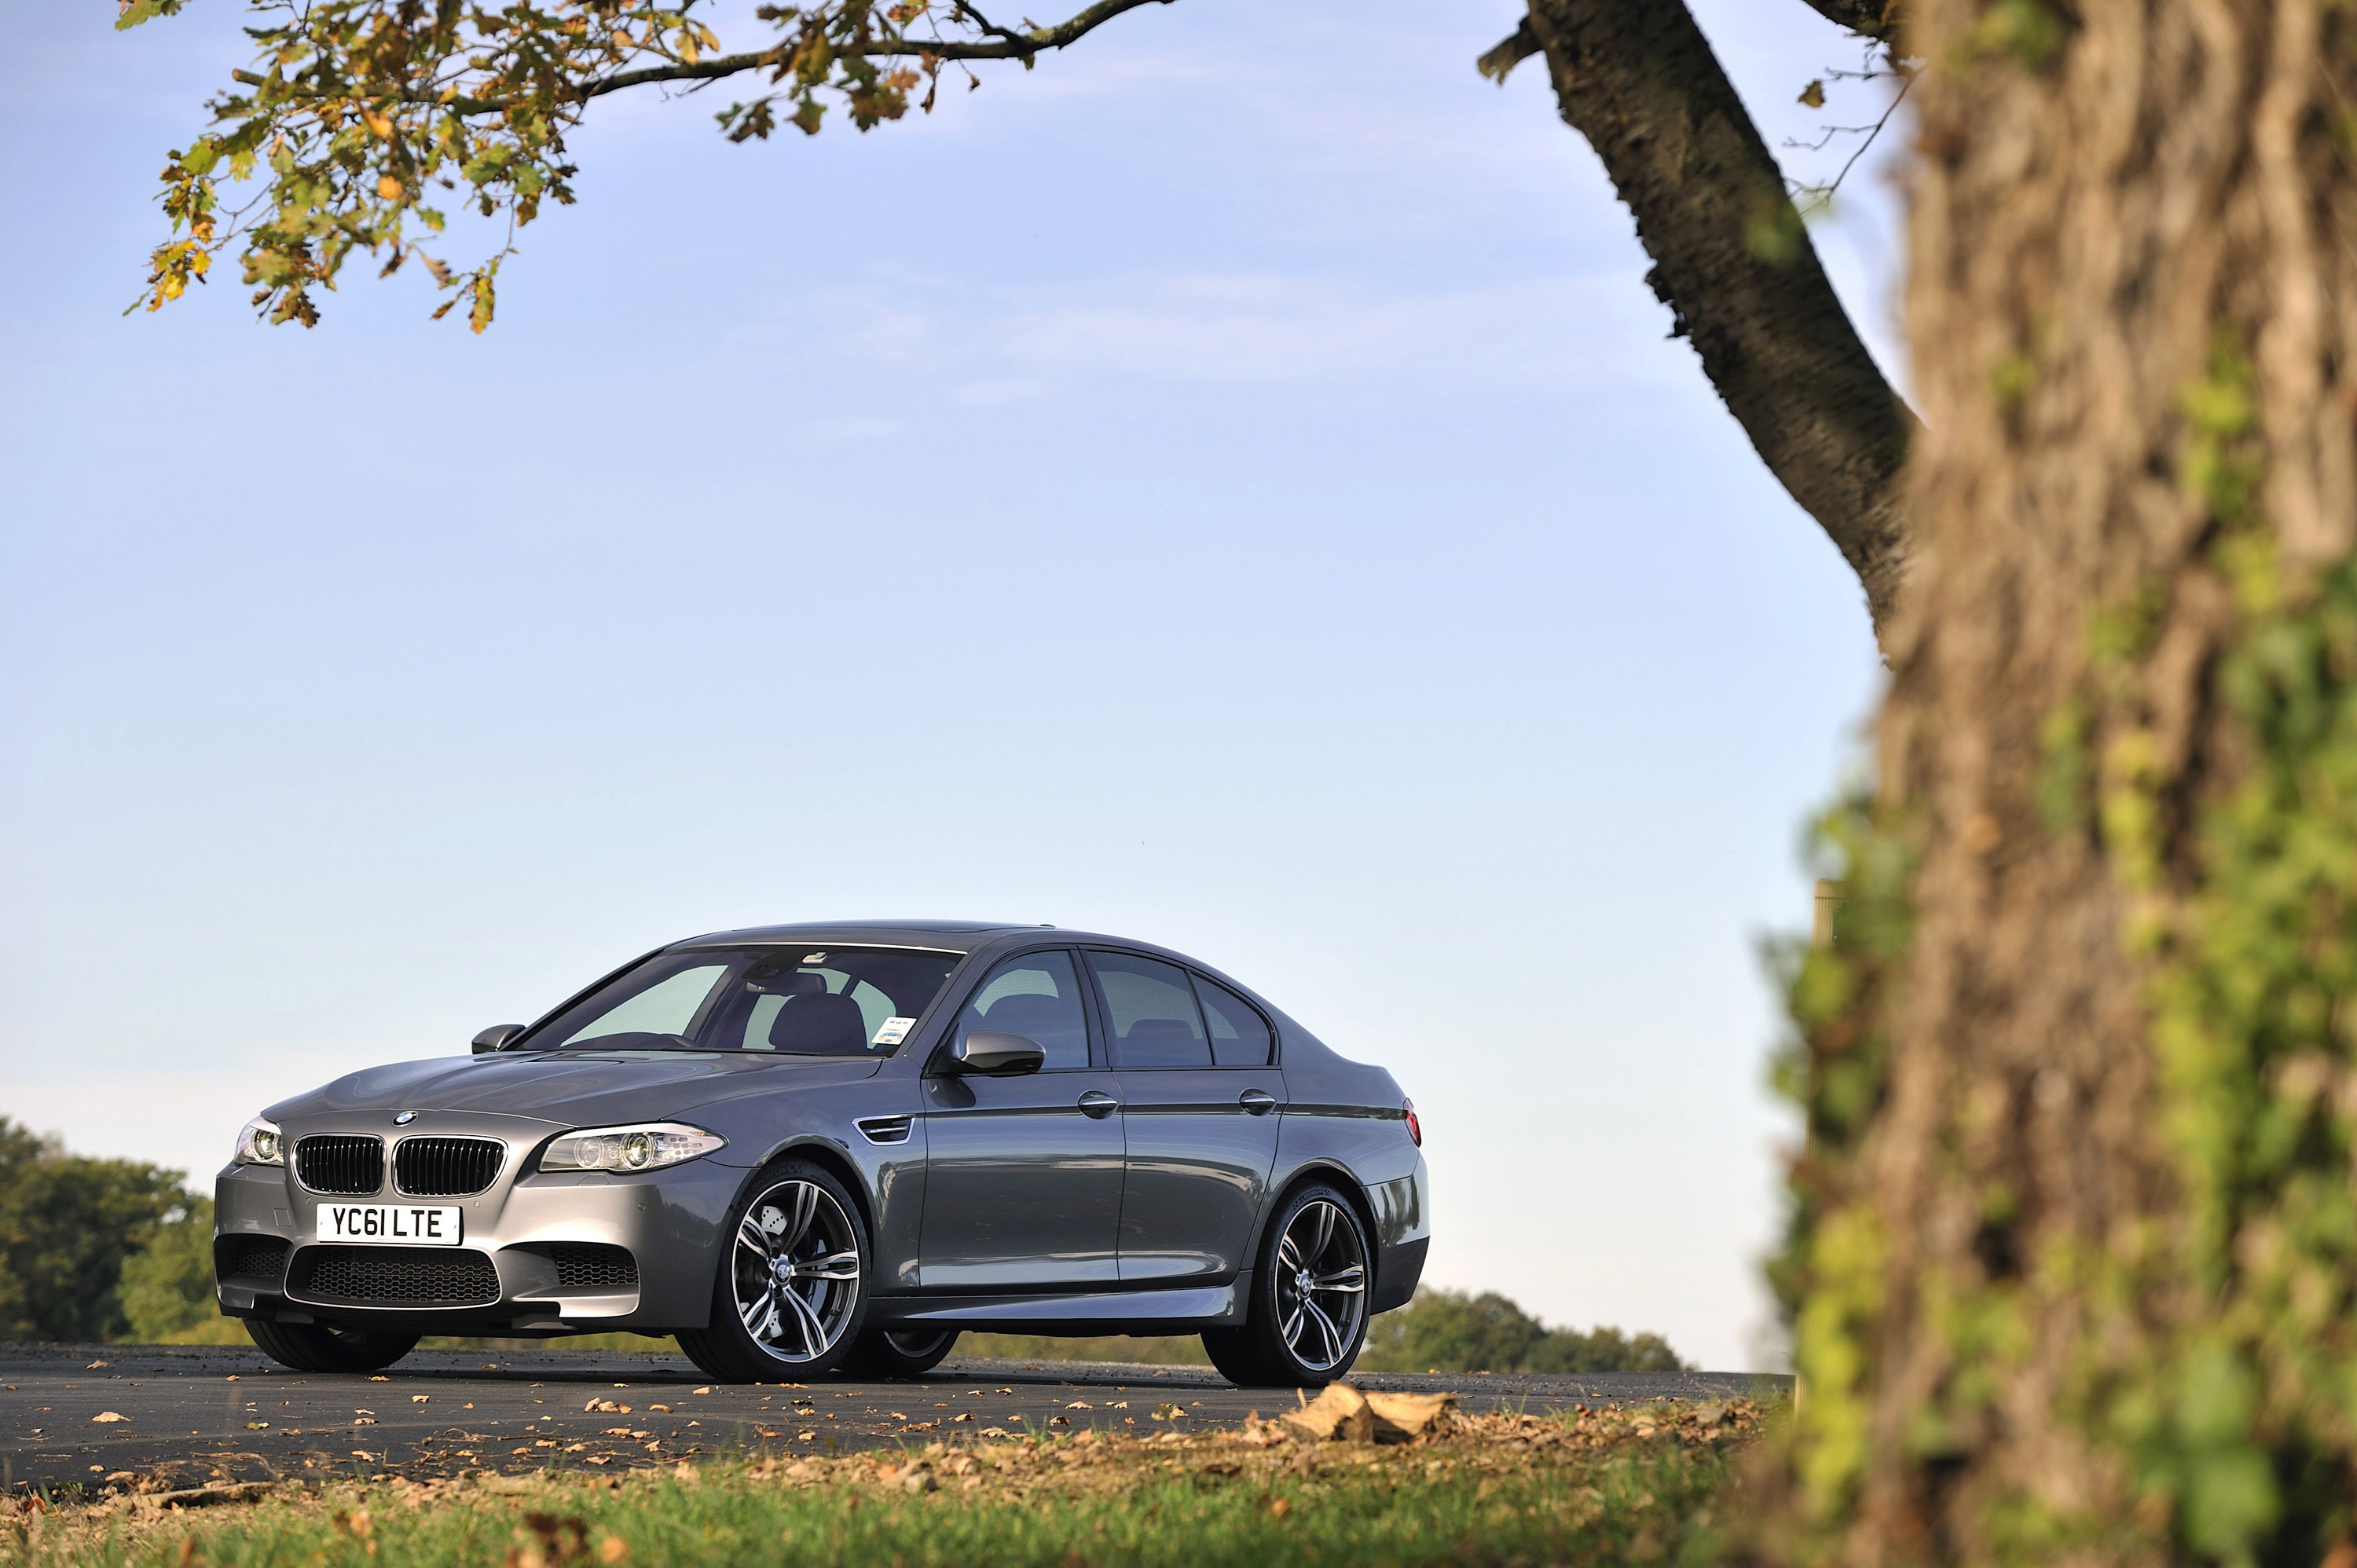 Bmw M5 Uk (50 Images) - New HD Car Wallpaper